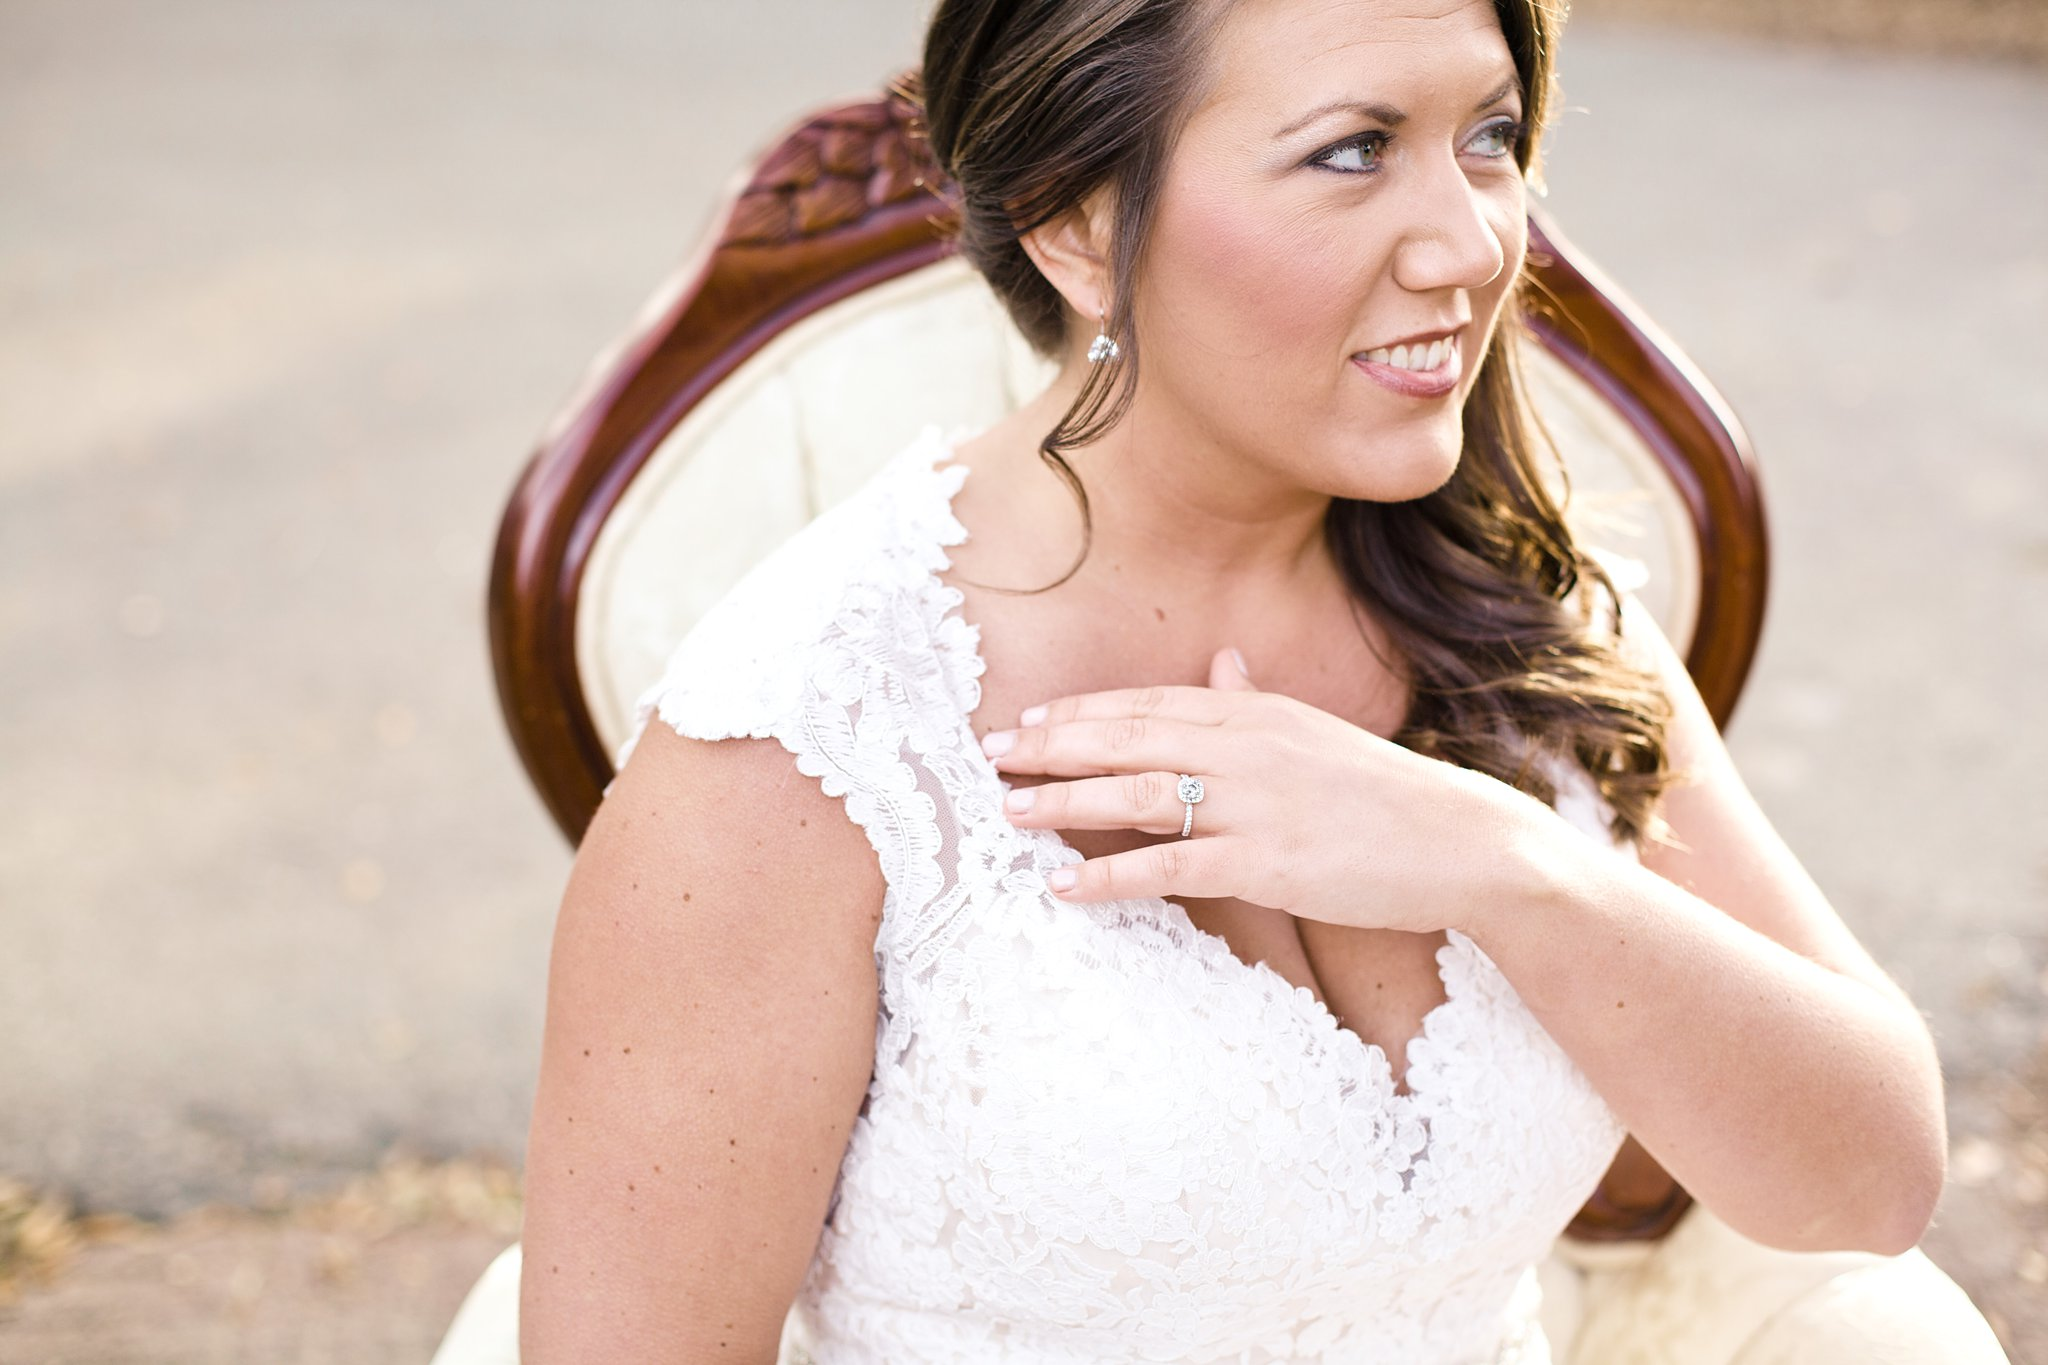 litchfield-golf-country-club-bridal-session-pawleys-island-sc-photos_0138.jpg